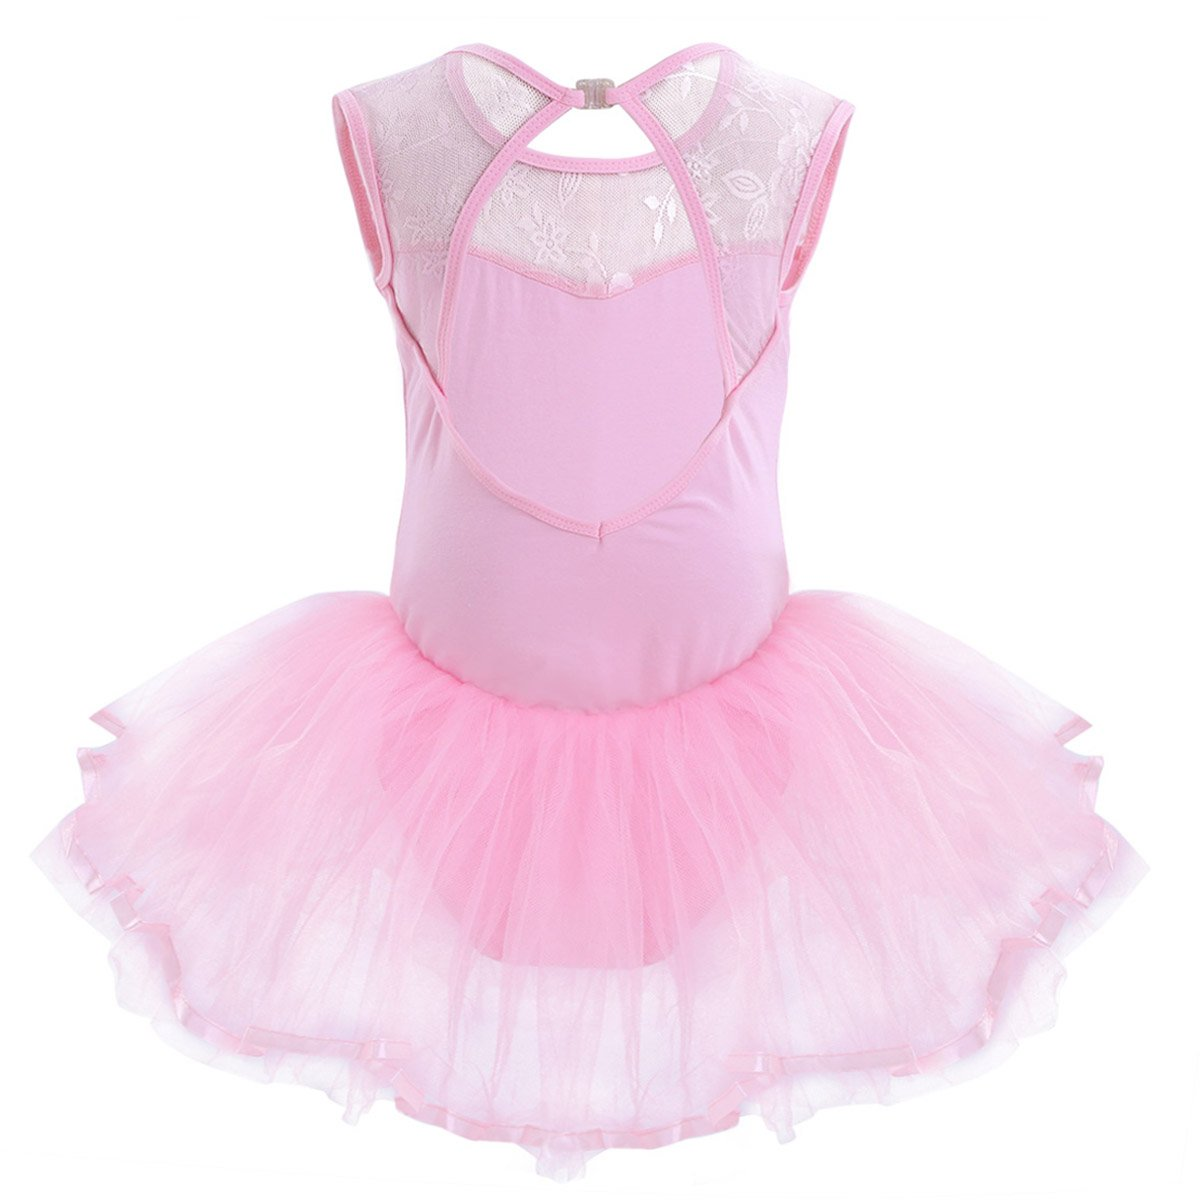 d14a8590b iEFiEL Girls Floral Lace Sleeveless Cutout Back Ballet Tutu Dress ...